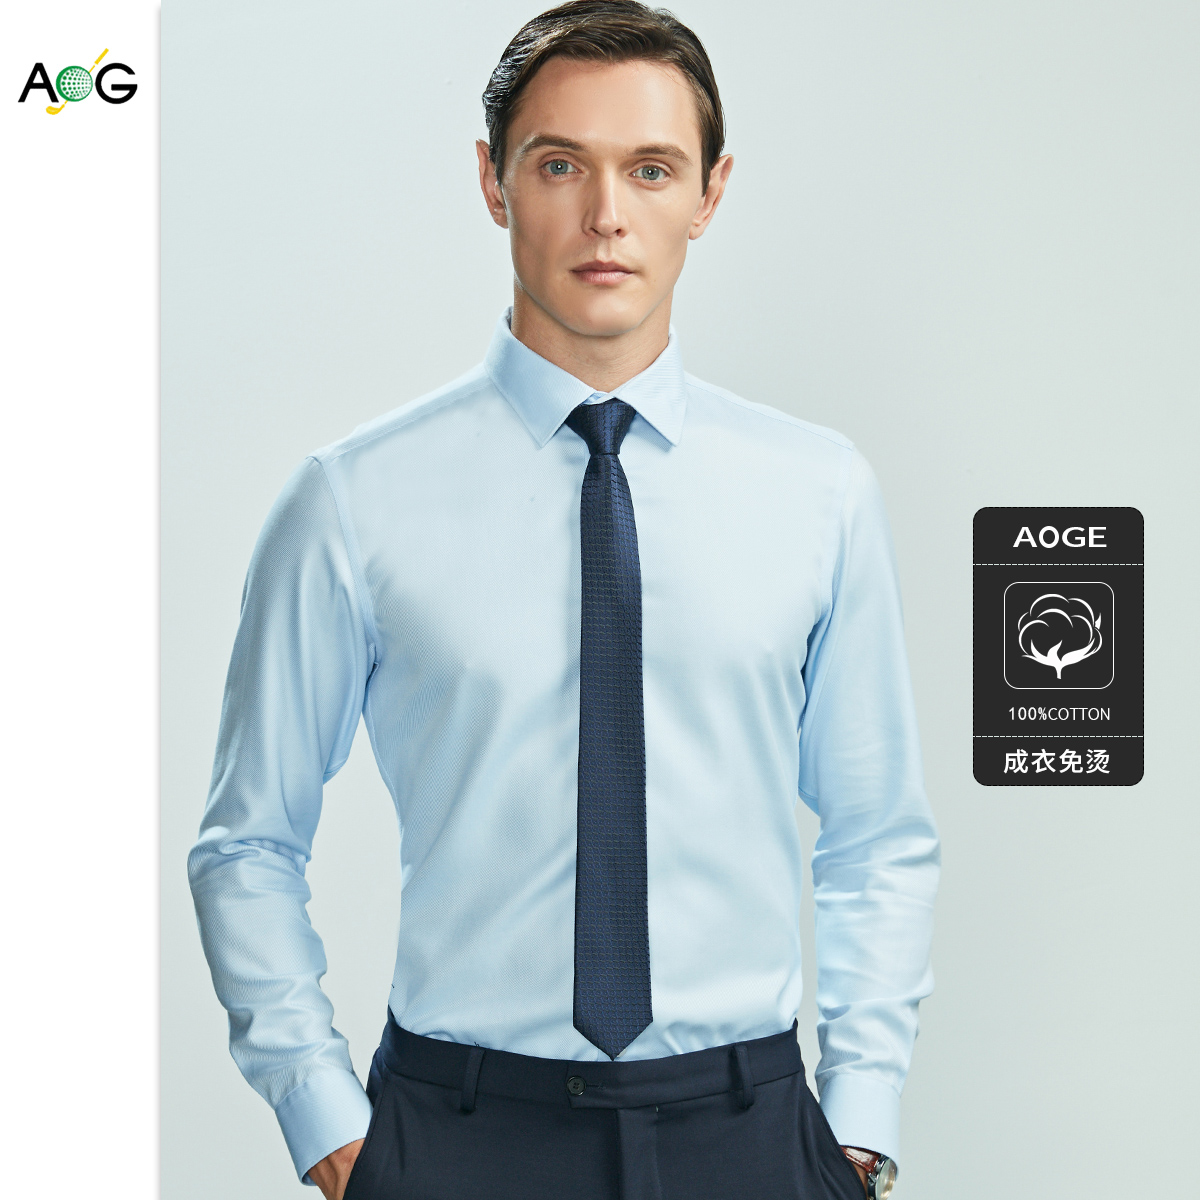 2020 new shirt for young and middle-aged mens non ironing cotton long sleeve wrinkle resistant business pure color shirt